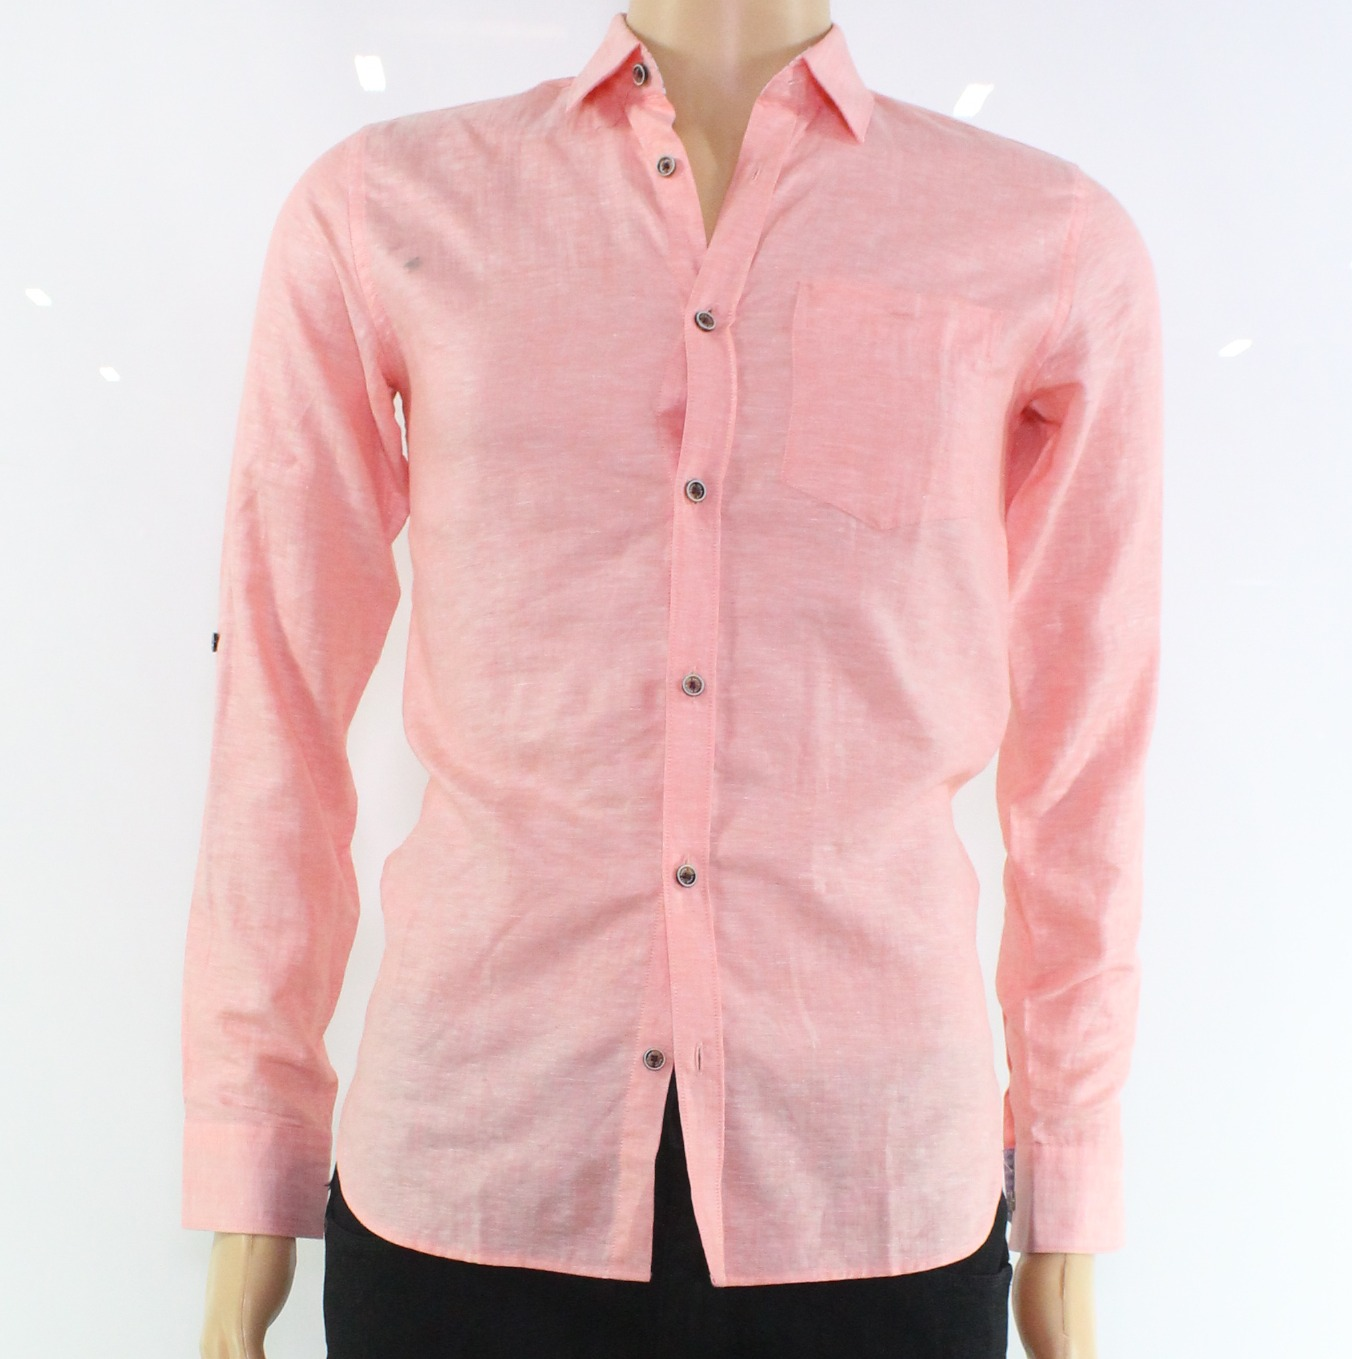 Ted Baker New Pink Salmon Mens Xs 1 Chest Pocket Button Down Shirt